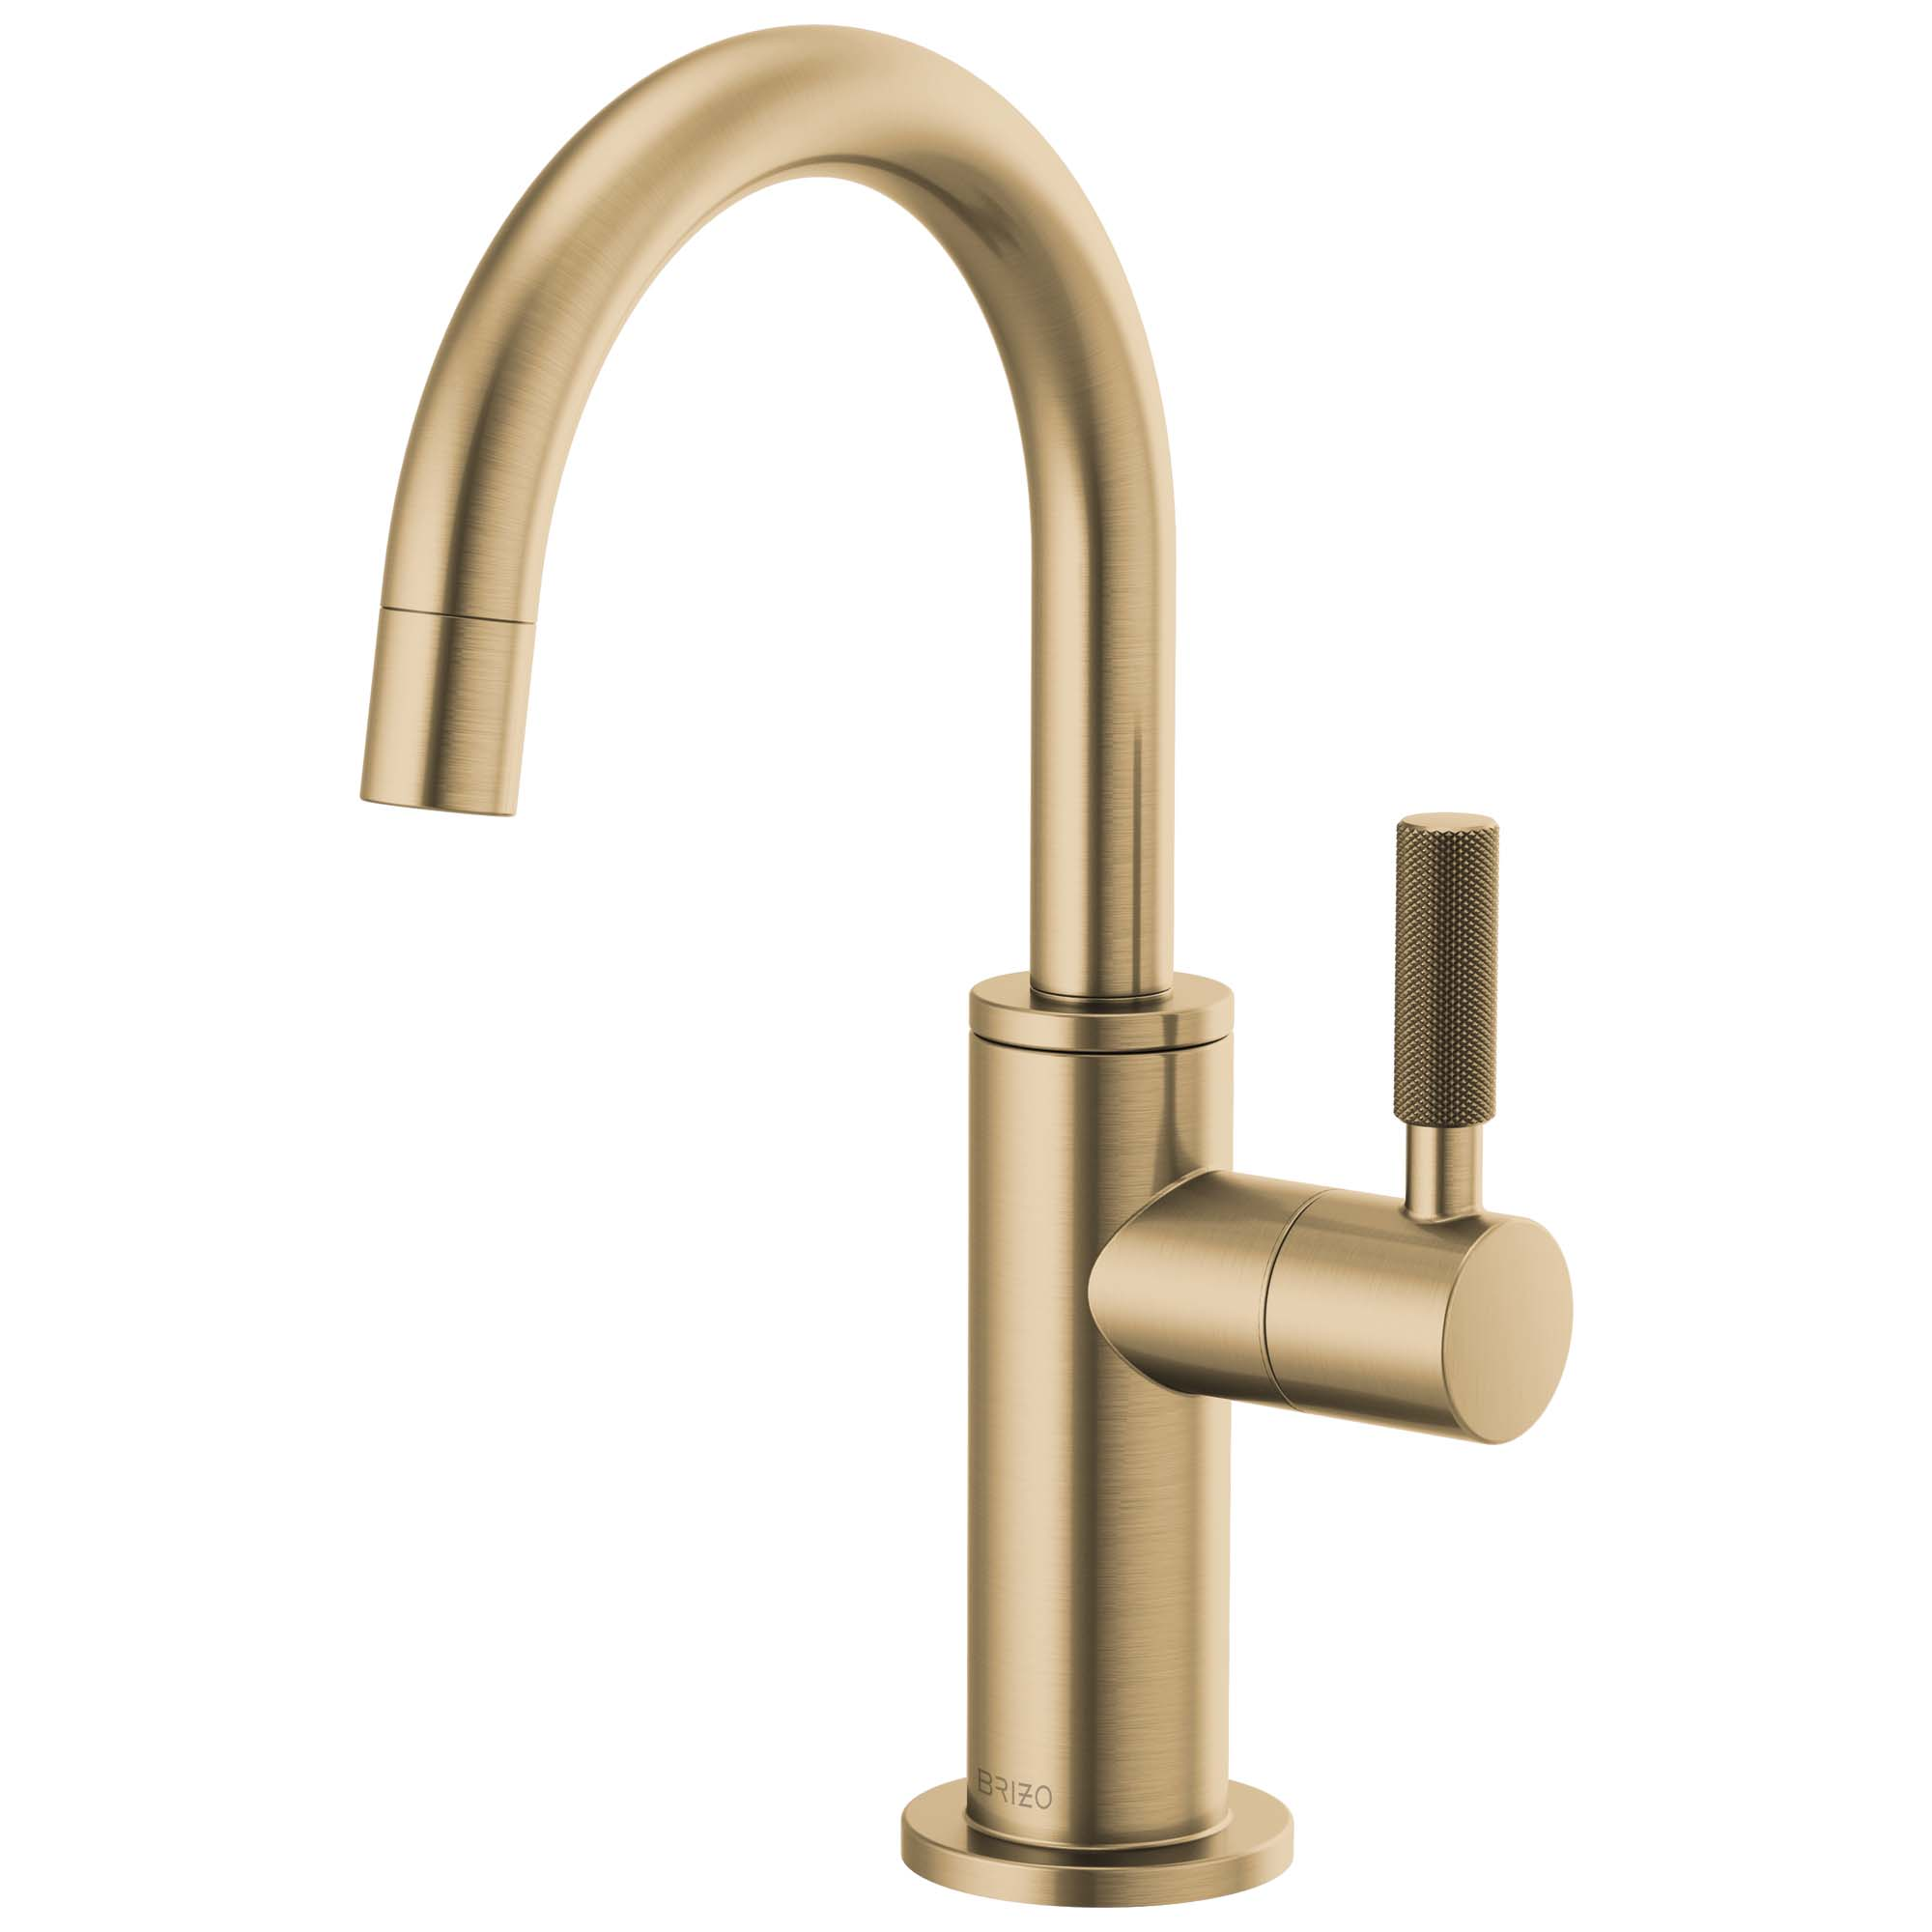 Brizo 61343LF-C-GL Litze Beverage Faucet with Arc Spout and Knurled Handle - Luxe Gold